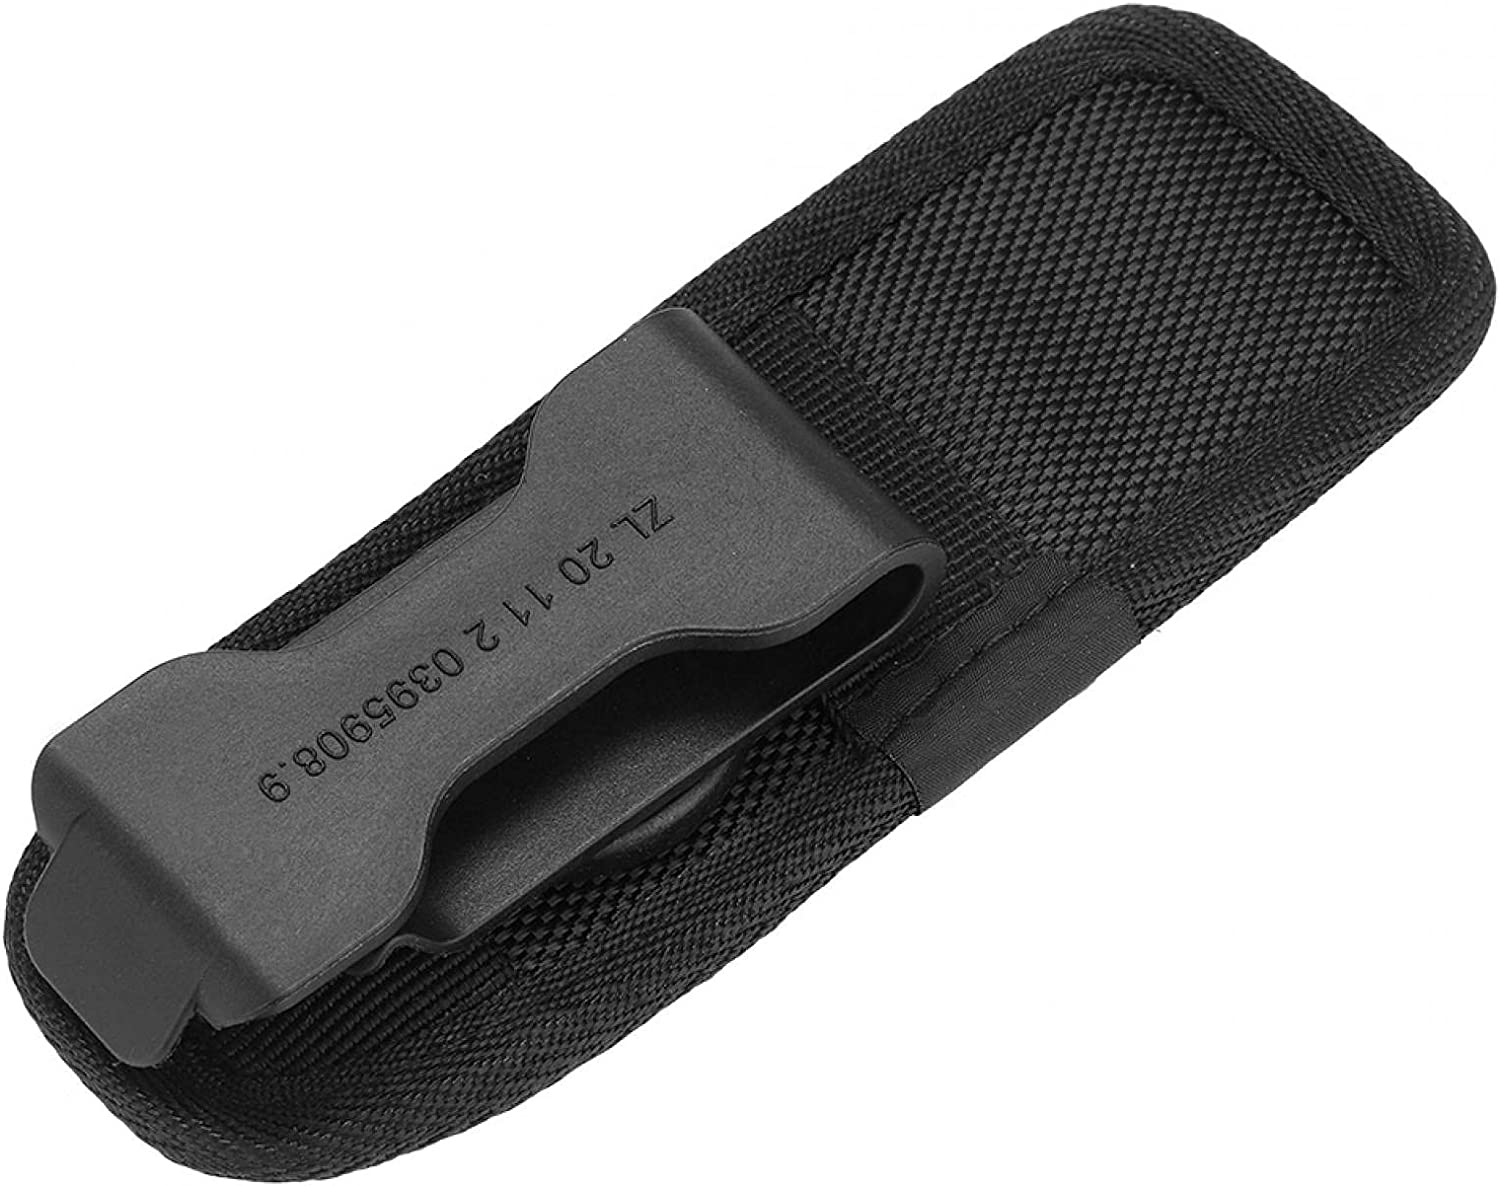 It is very popular Max 62% OFF Nylon Flashlight Holster for Hiking Black 401#